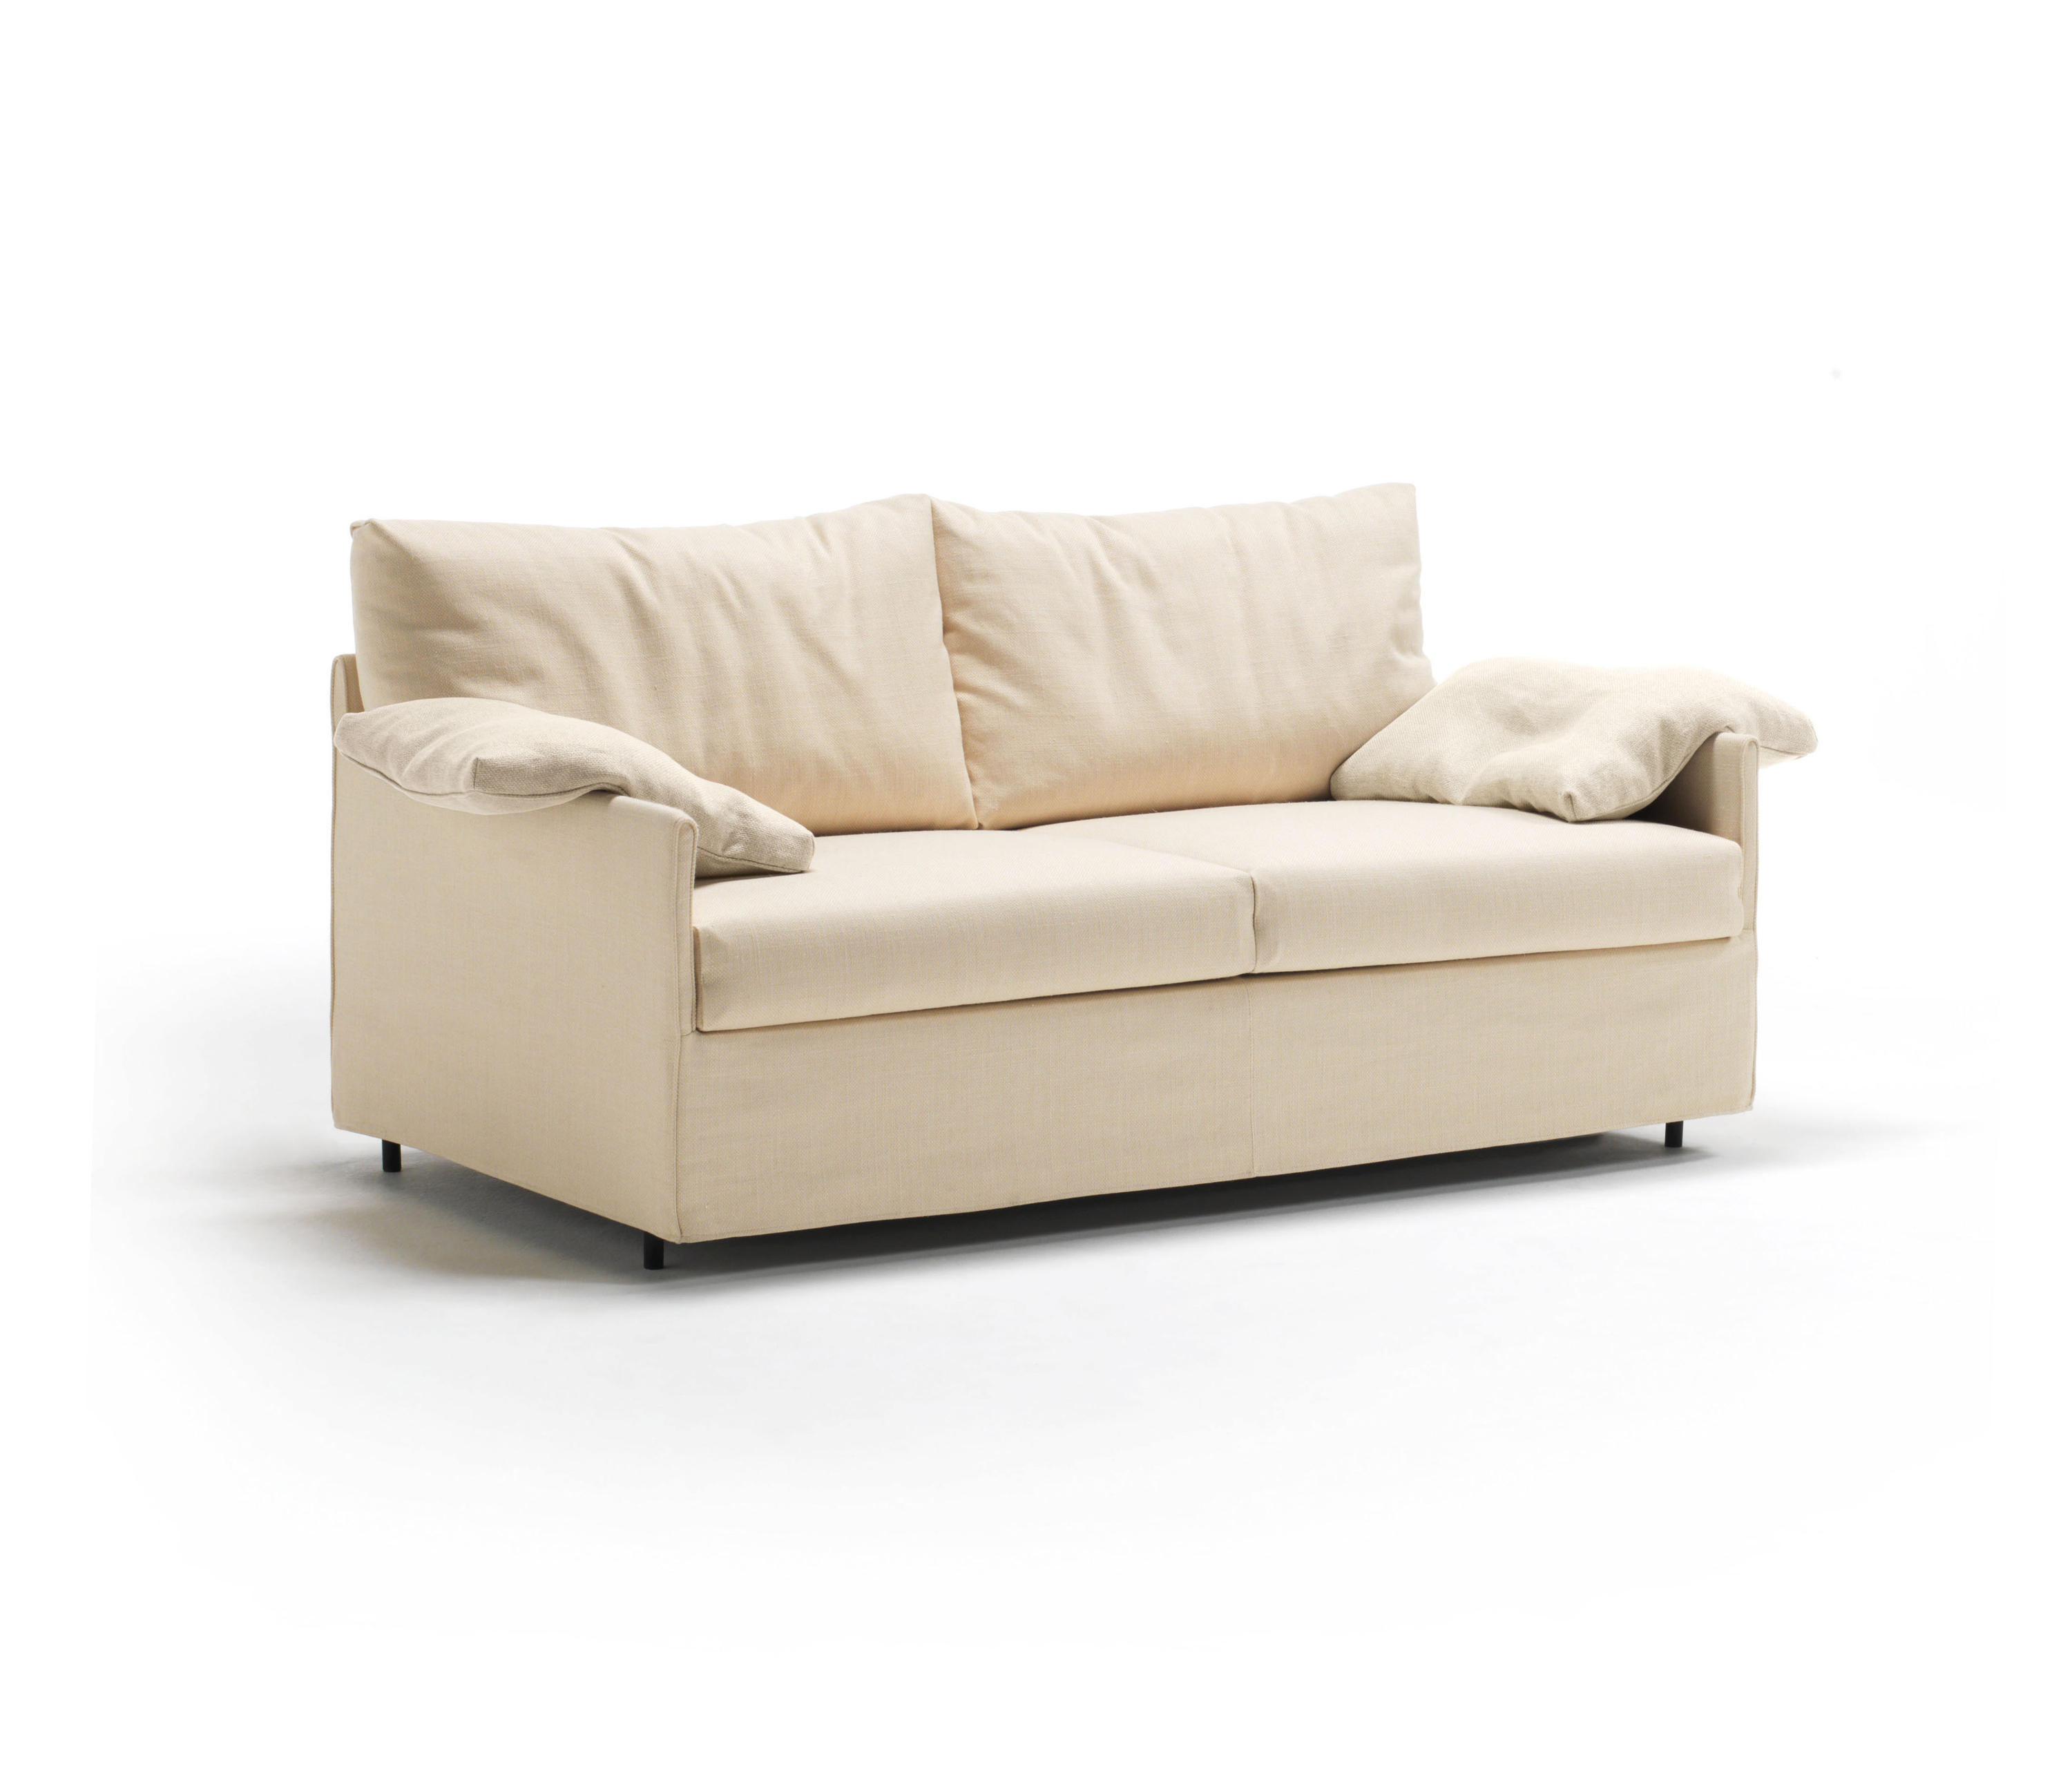 CHEMISE SOFABED - Sofa beds from Living Divani  Architonic